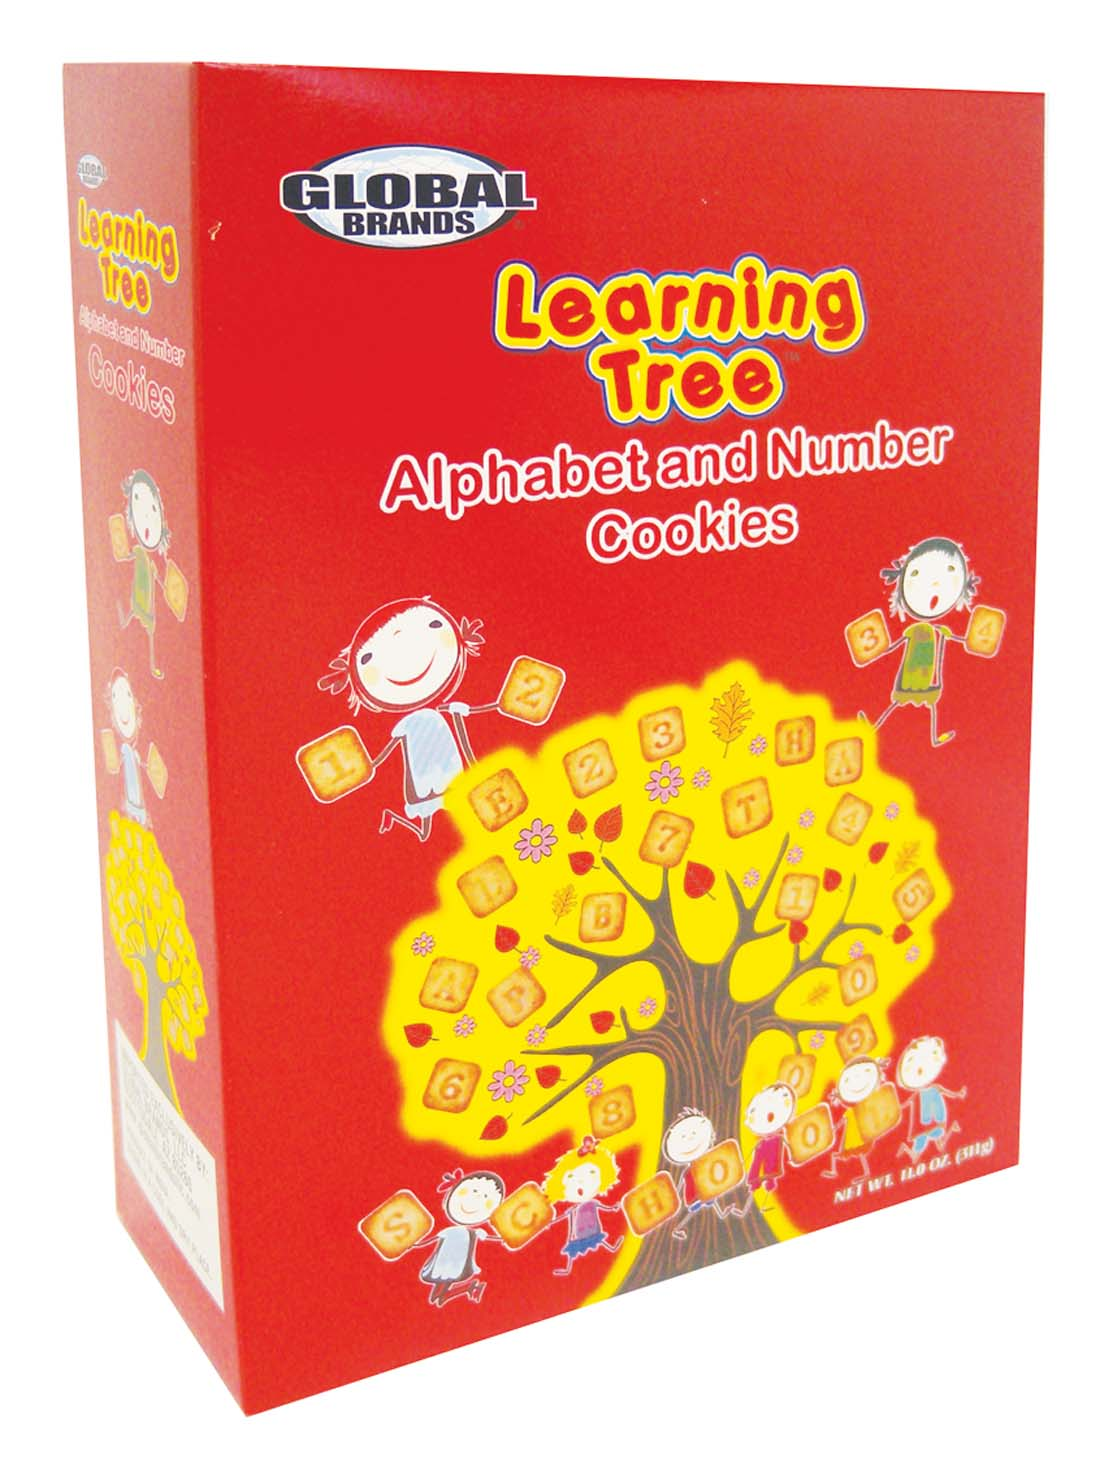 View LEARNING TREE COOKIES 11 OZ ALPHABET & NUMBERS